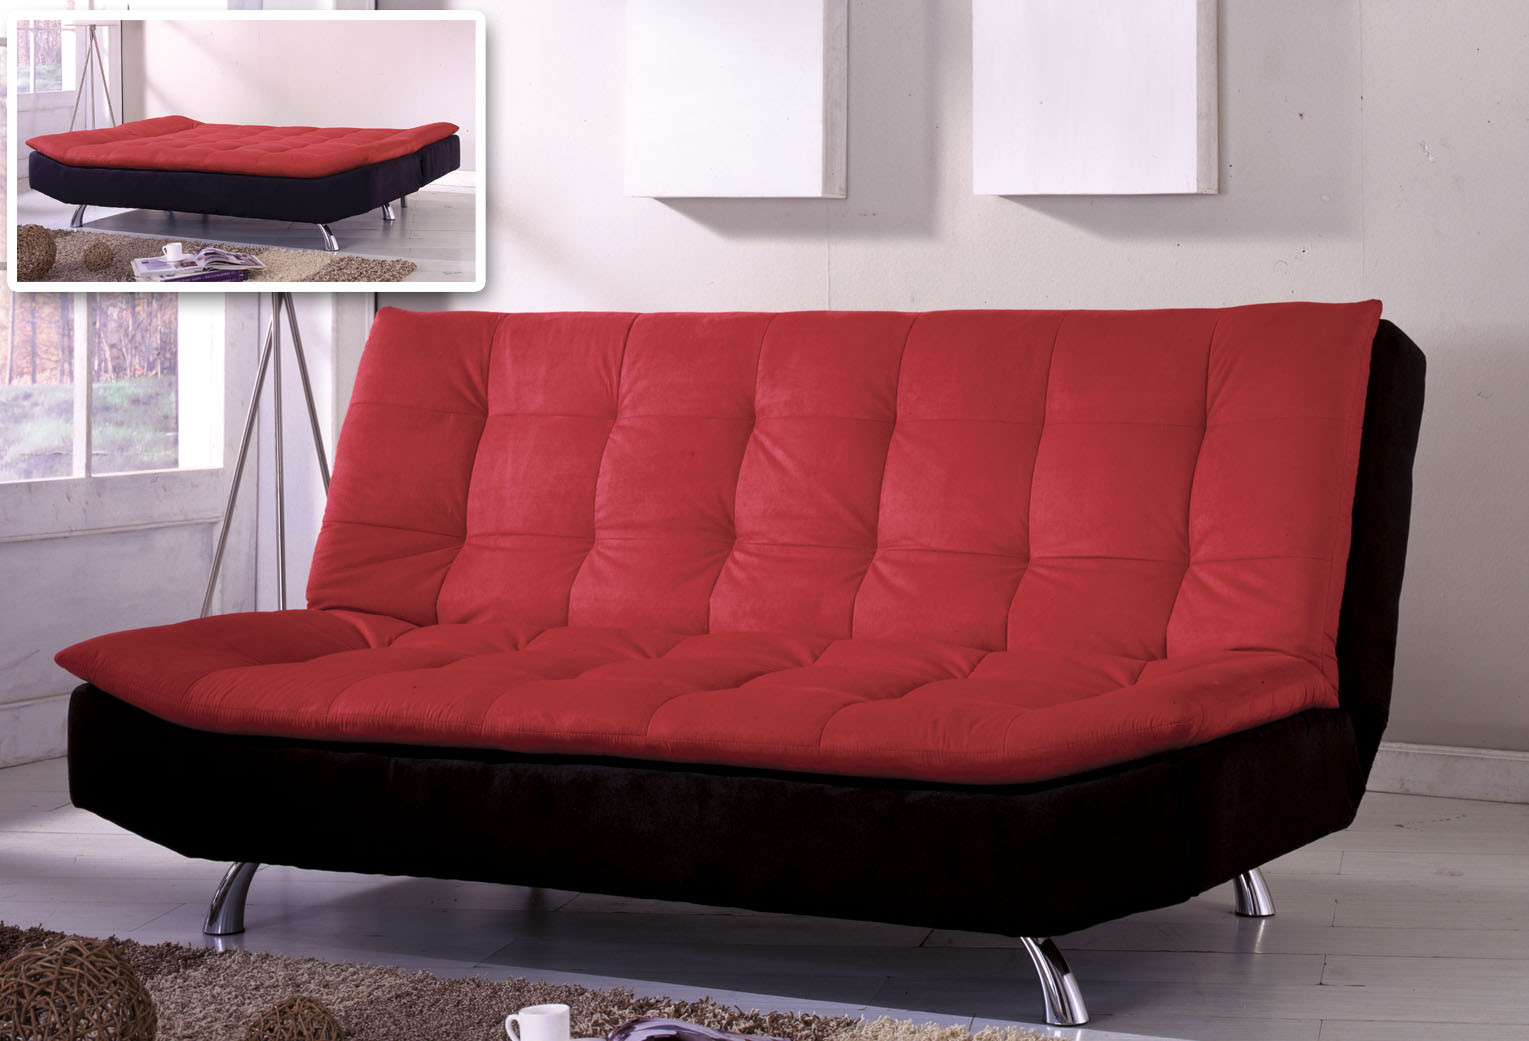 Tarva Daybed Hack Futon Sofa Bed Sophisticated Furniture 187 Inoutinterior